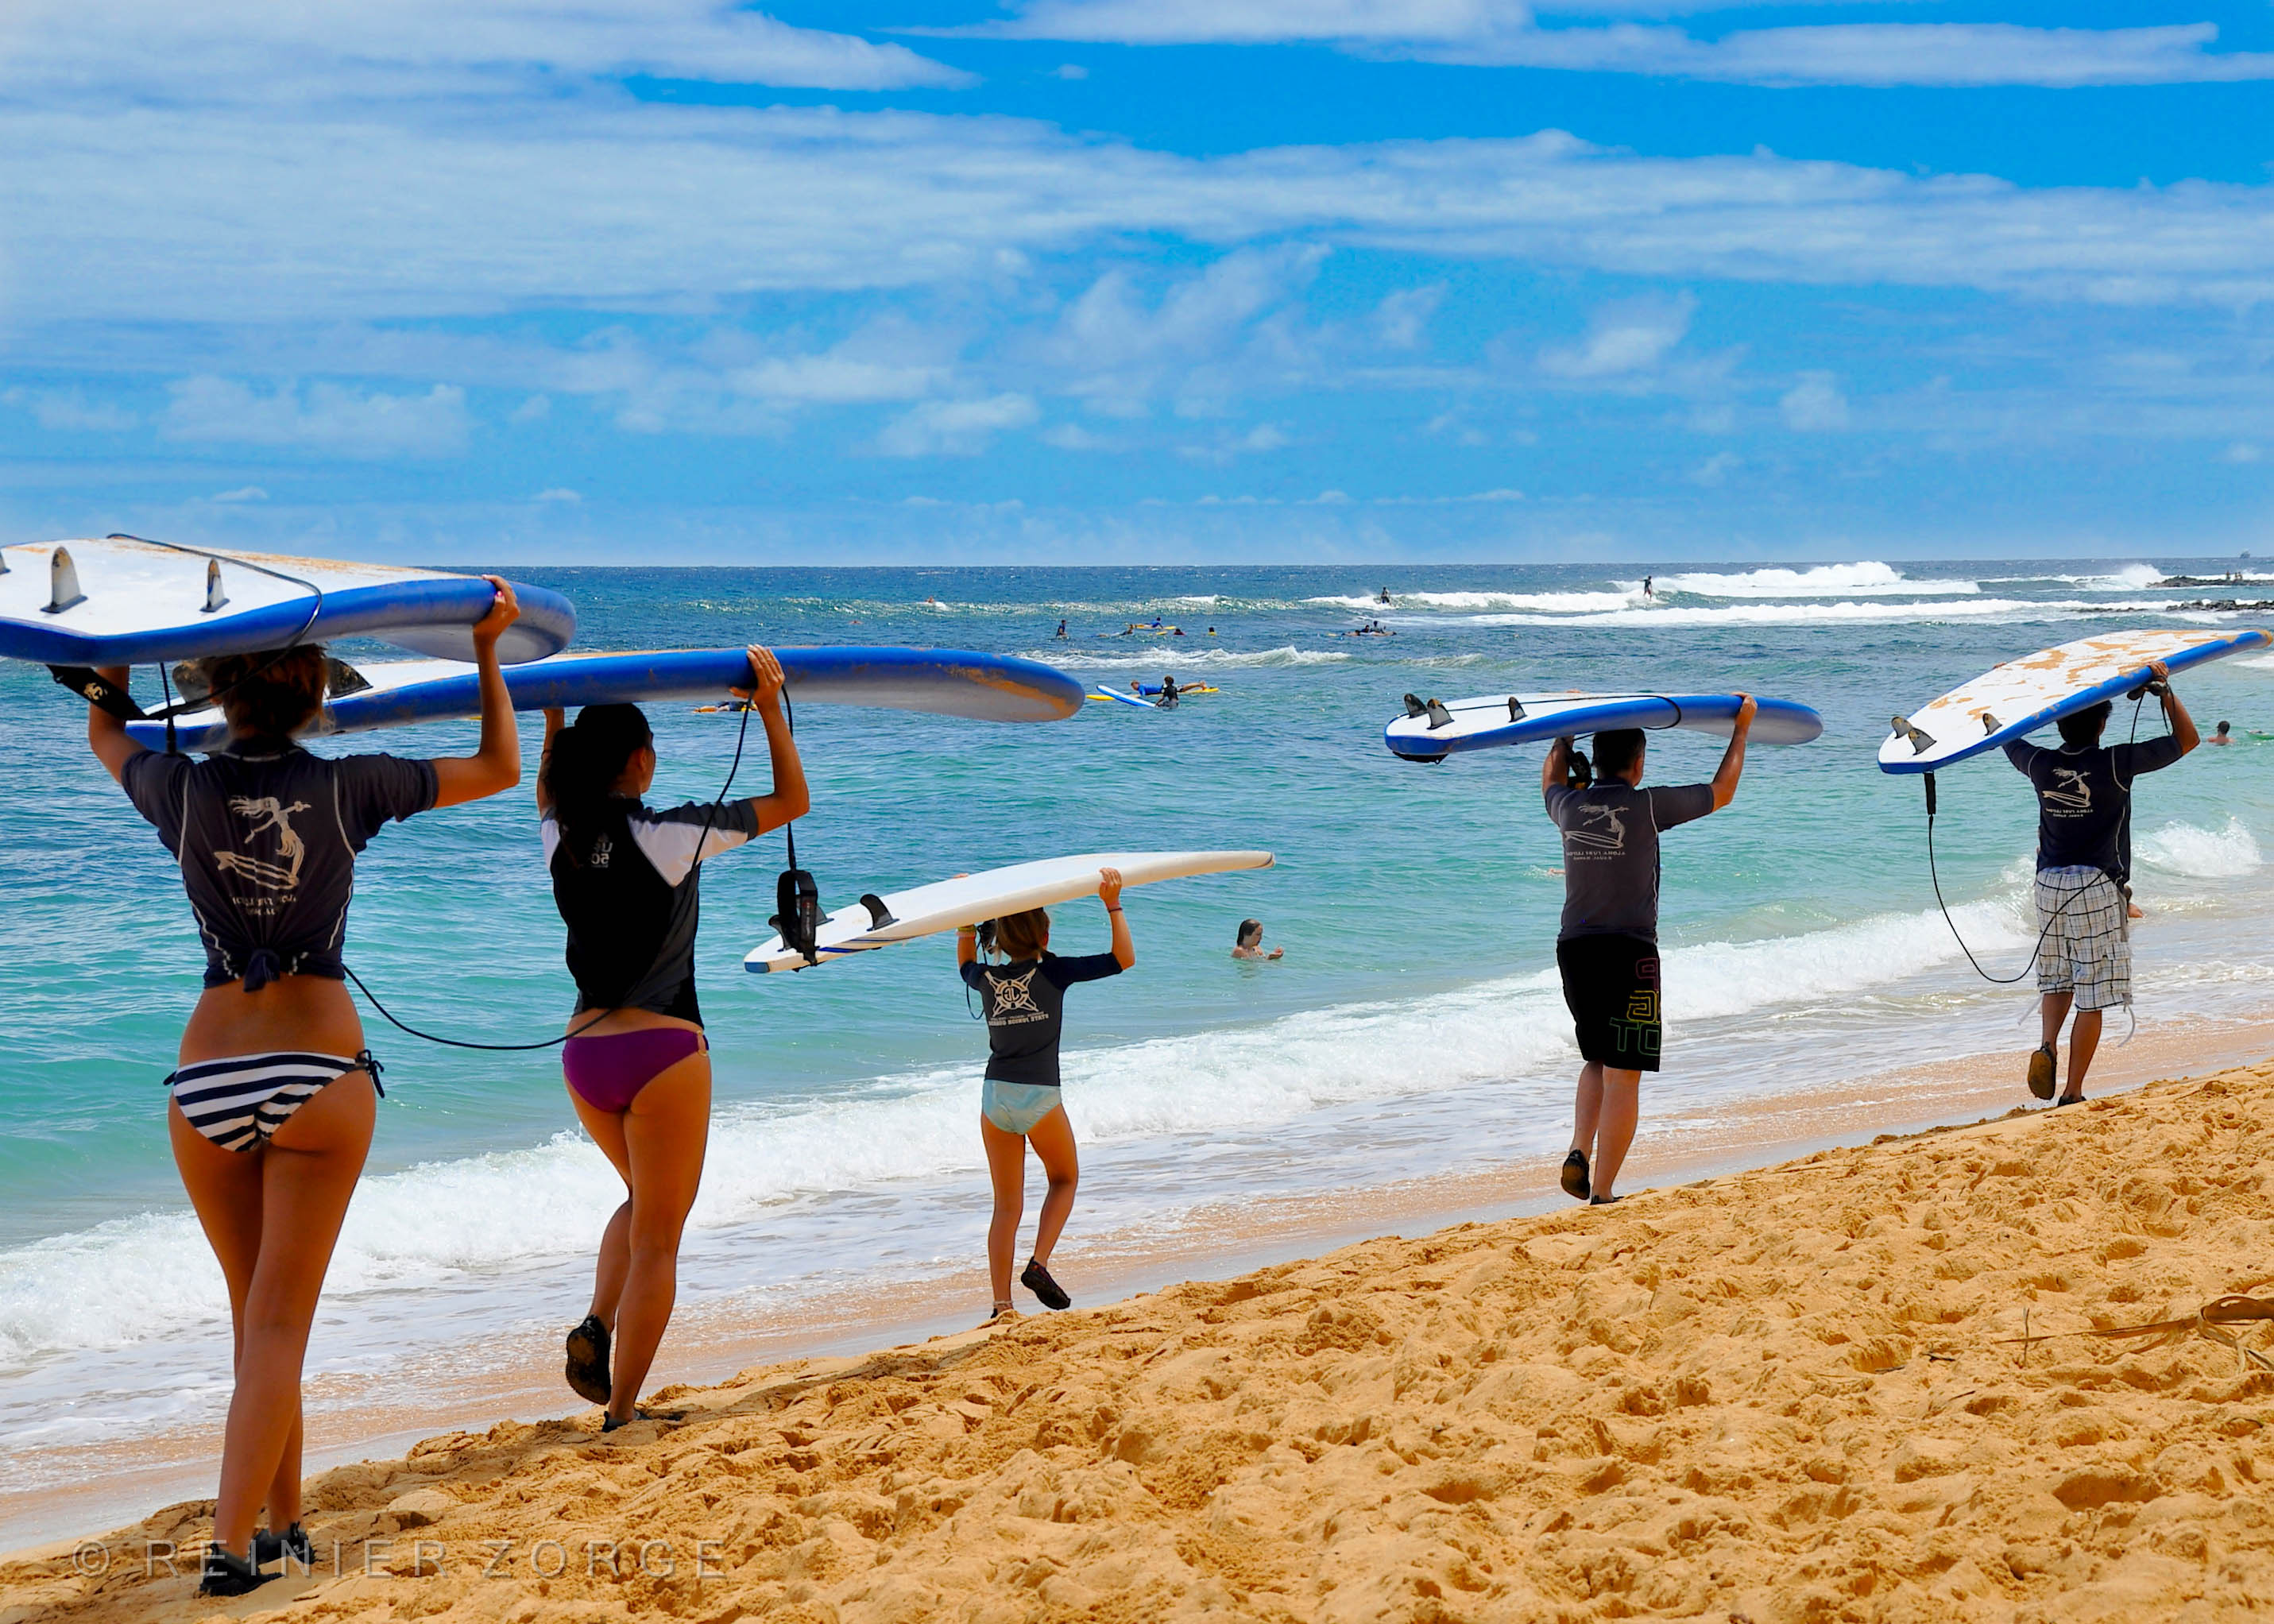 Gain a new skill at Kauai Surf School